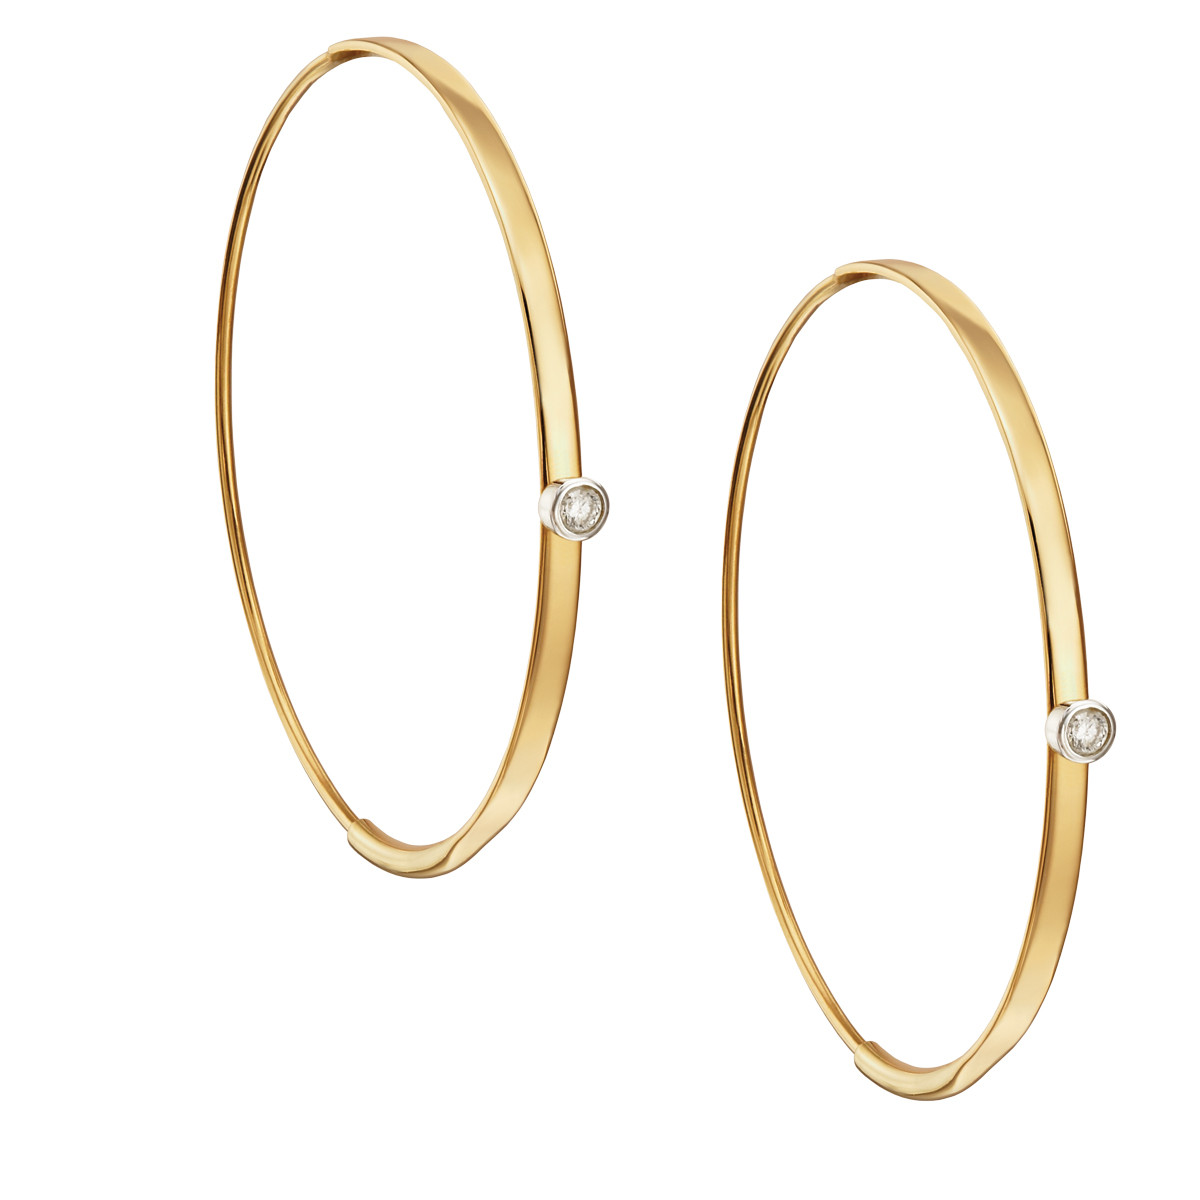 Lana Flat Magic Hoop Earrings